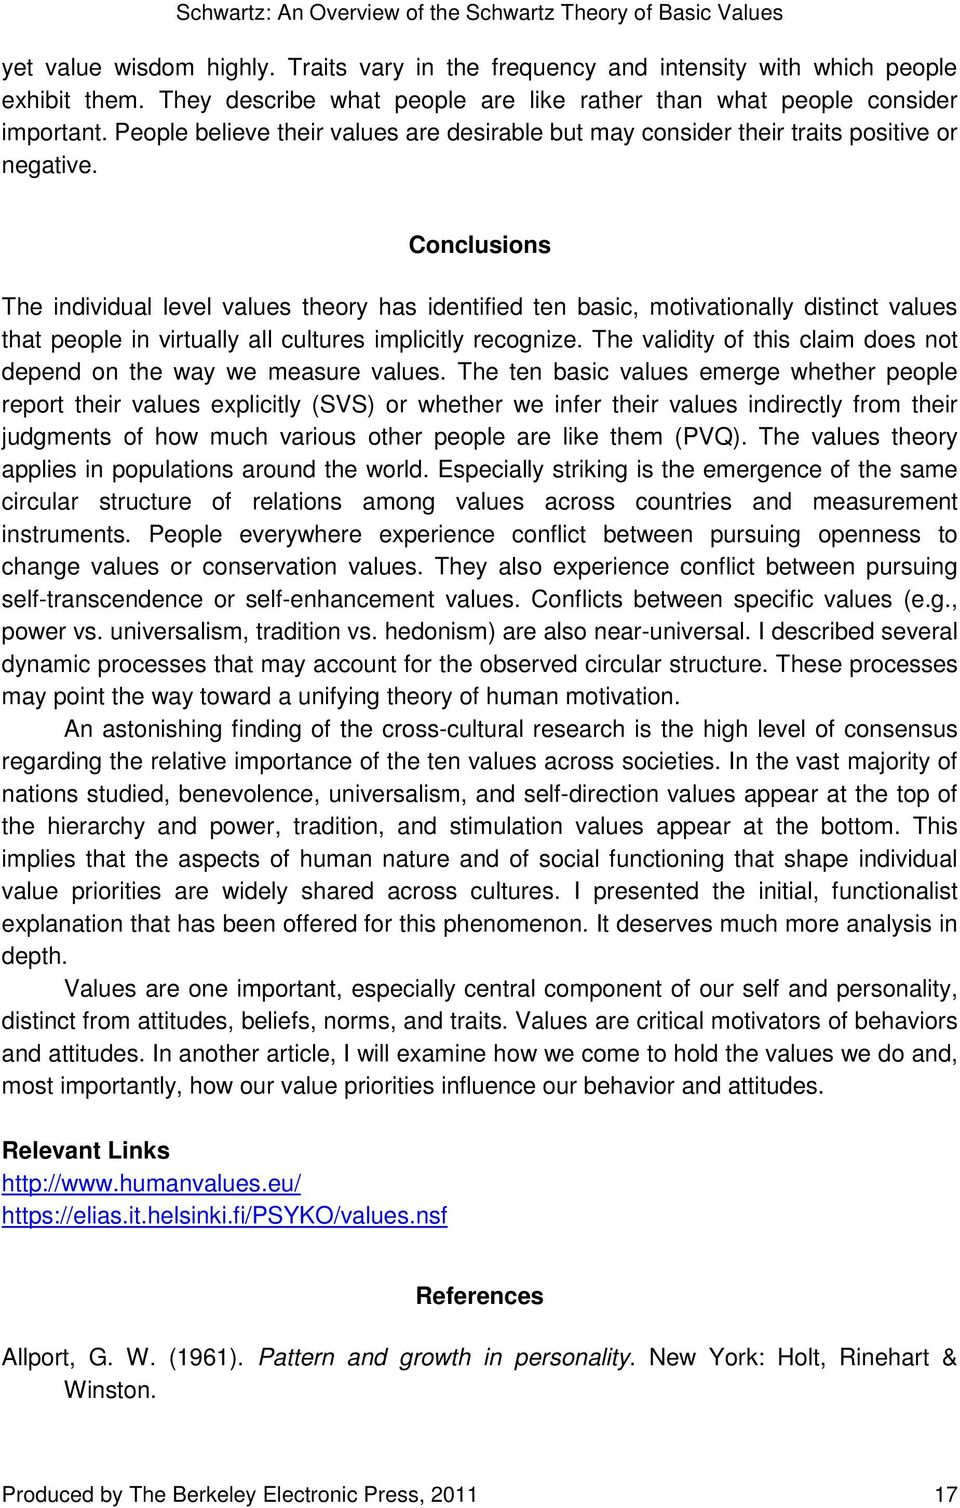 comparison of schwartz value theory and self determination This article argues that freedom, autonomy, and self-determination can  barry  schwartz, department of psychology, swarthmore college  choice that the  theory of rational choice leaves out and that  chose so as to maximize their  preferences, or values, or  tversky have suggested is that the difference  between the.